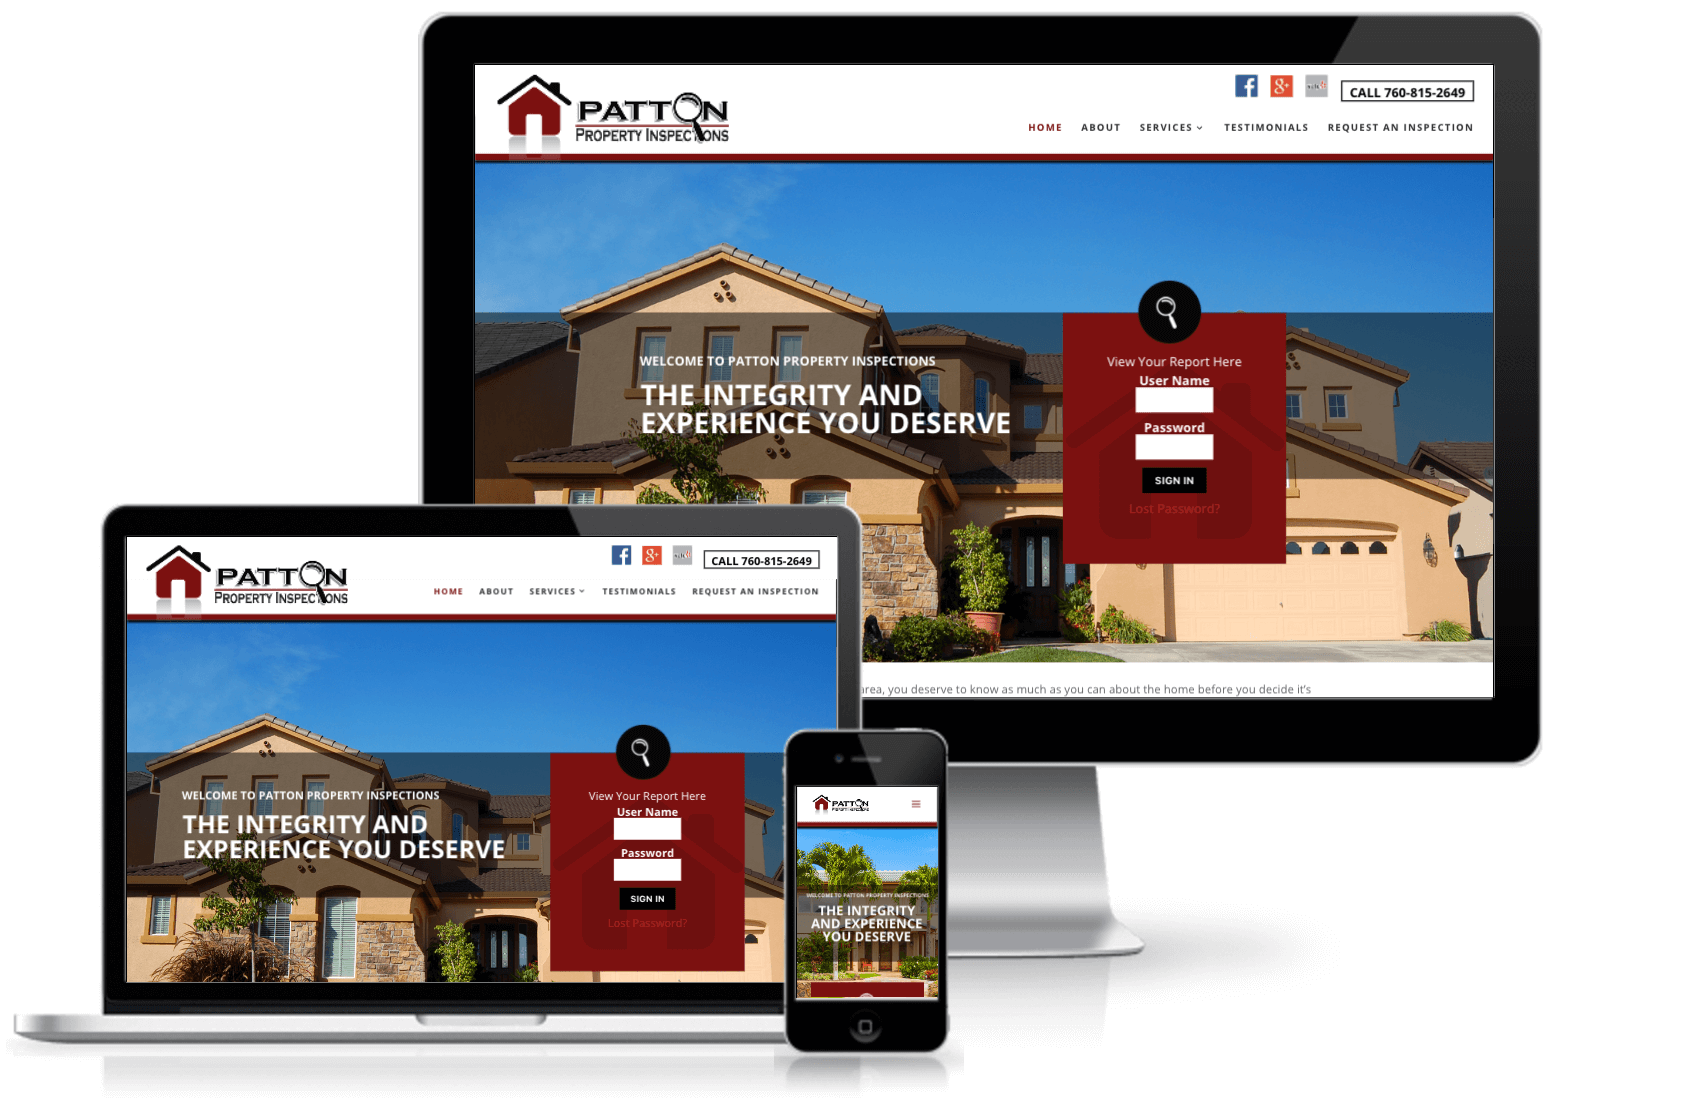 patton property inspection website